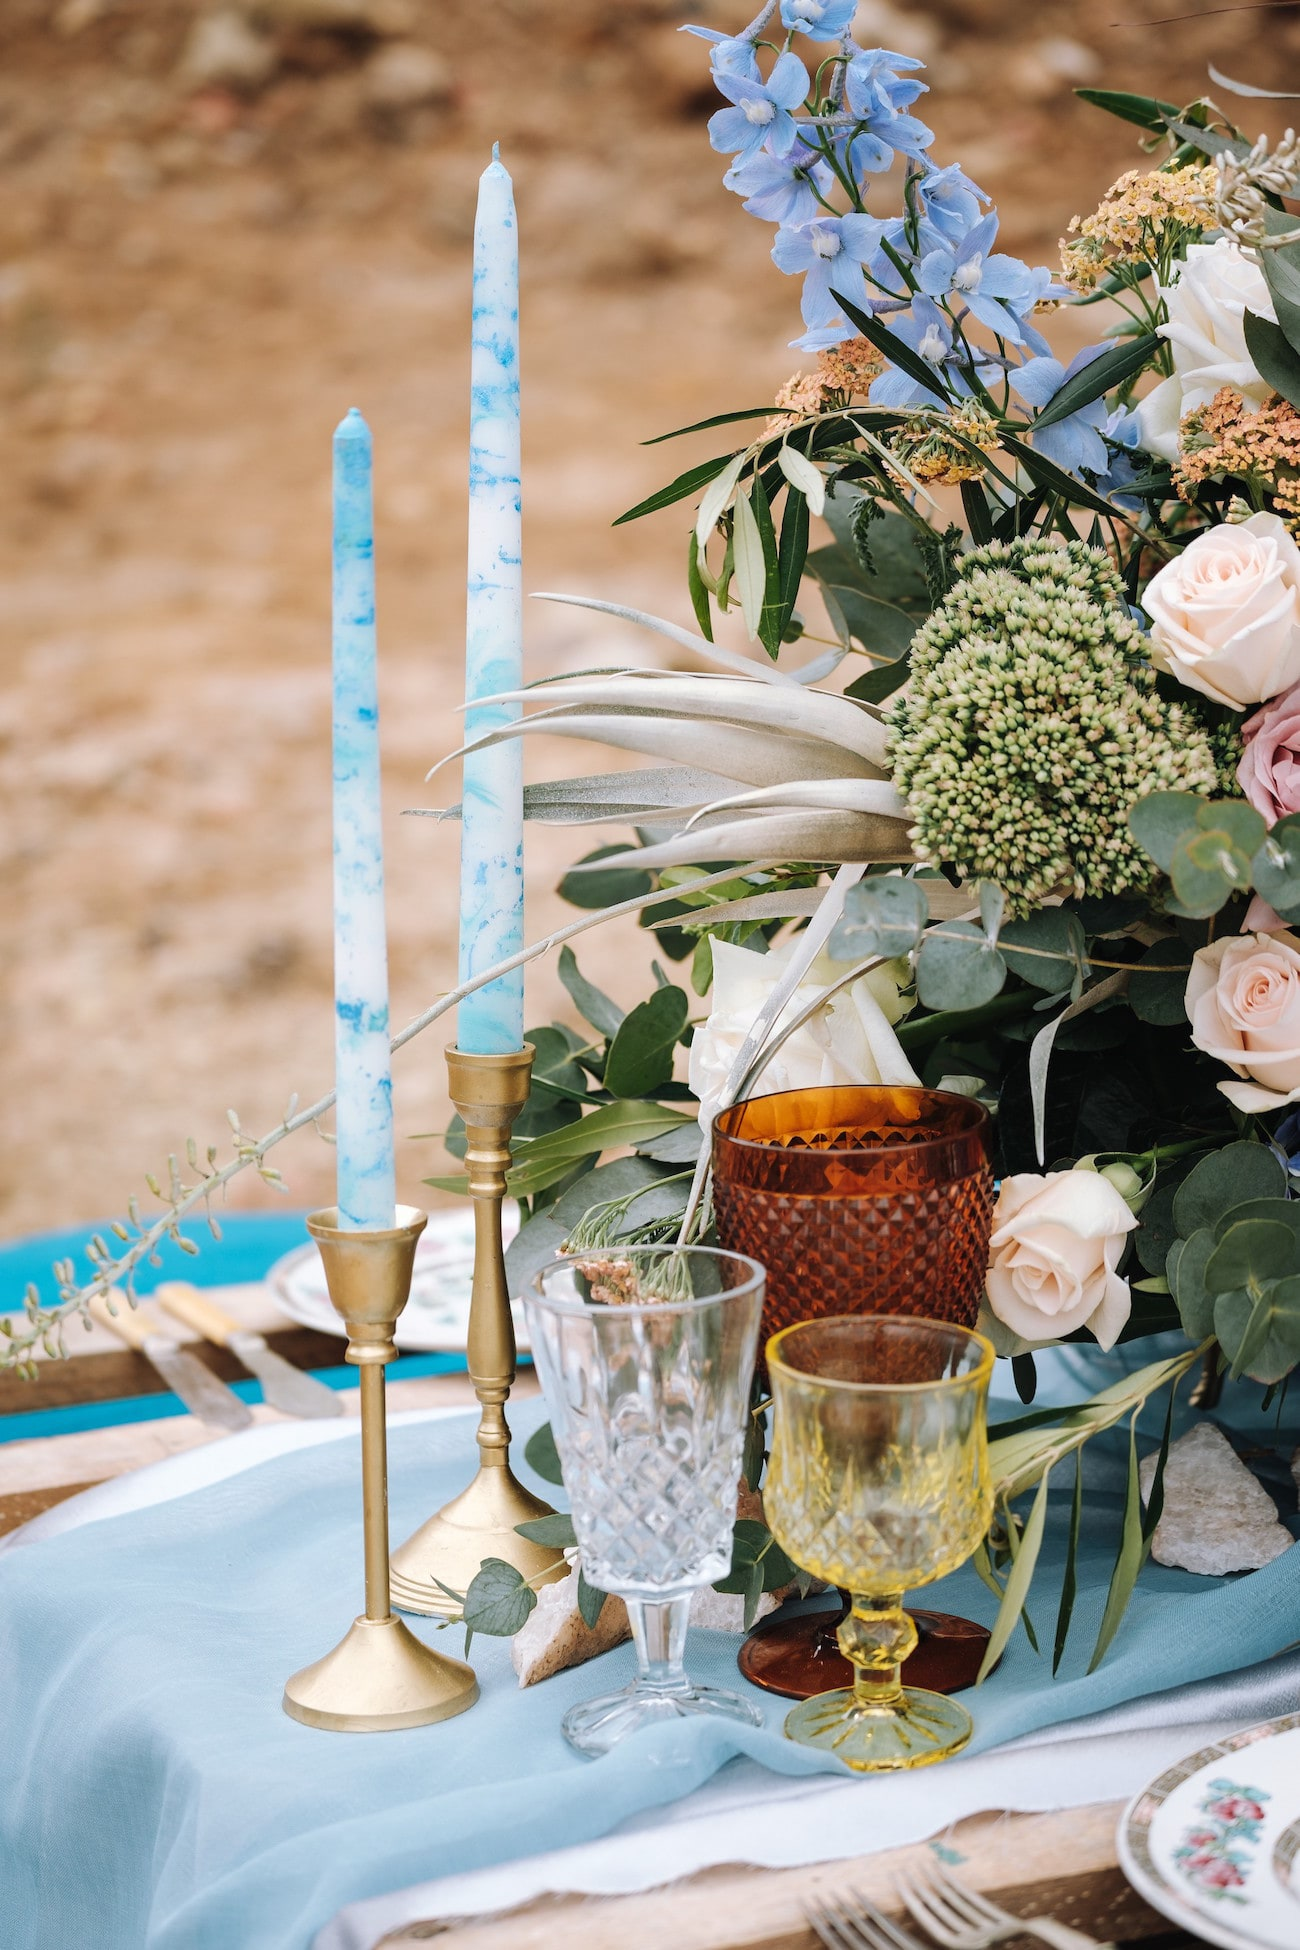 Boho Luxe Centerpiece | Atmospheric Wedding Inspiration | Credit: The Shank Tank